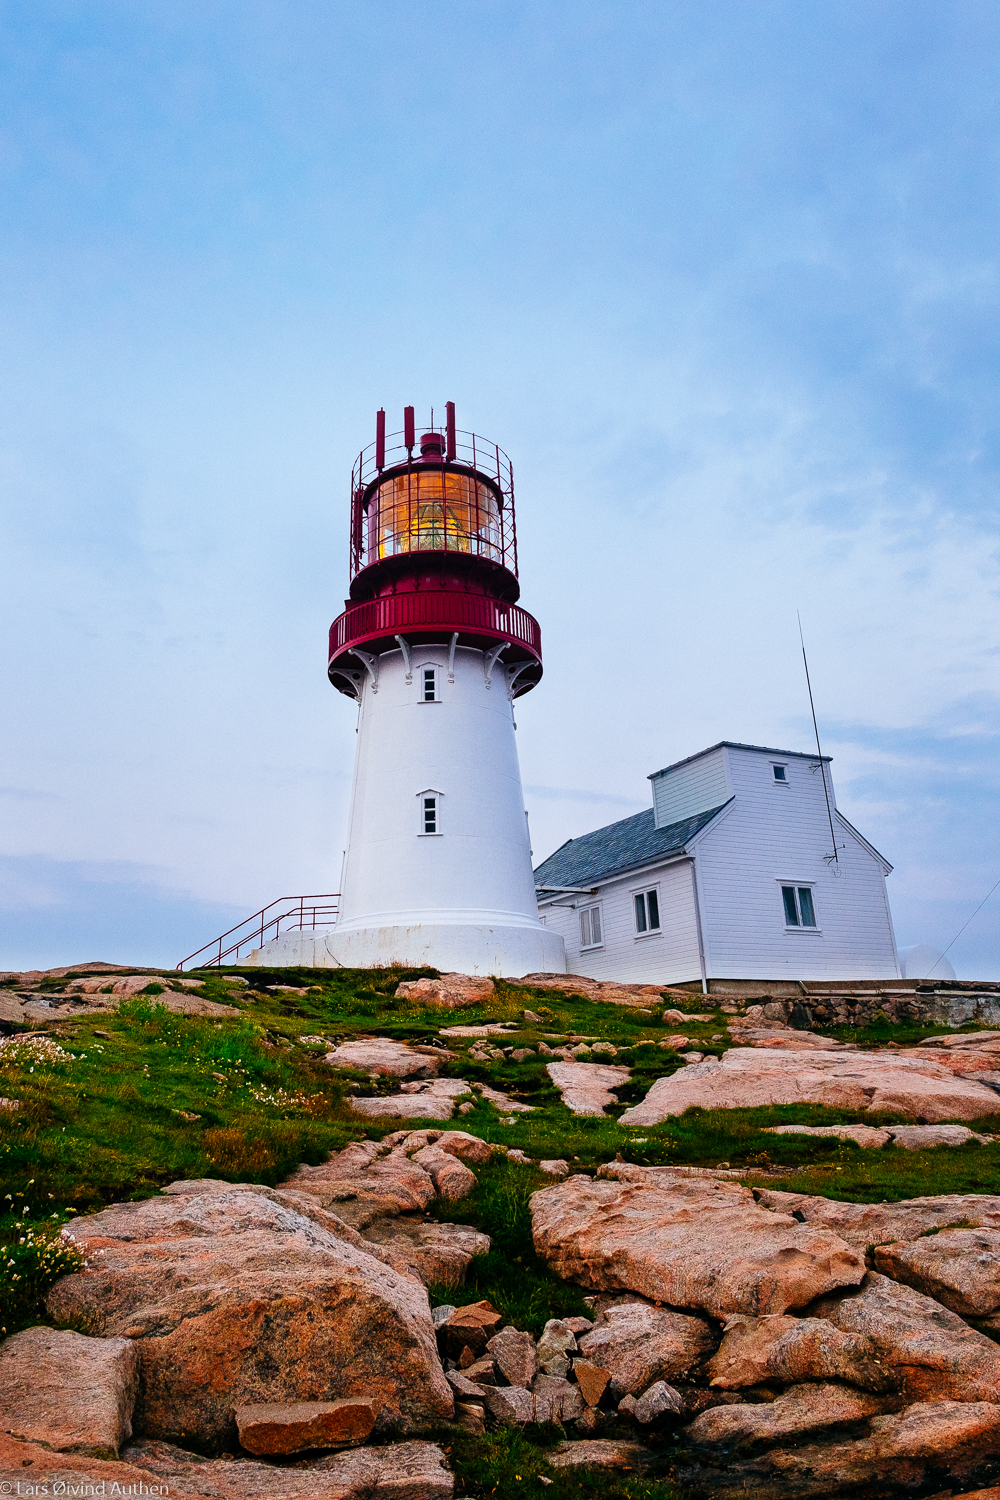 Lindesnes Lighthouse before sunset. Fujifilm X-T1 + XF 14mm f/2.8 @ ISO 800, f5/.6, 1/60 sec. Handheld. No filters.